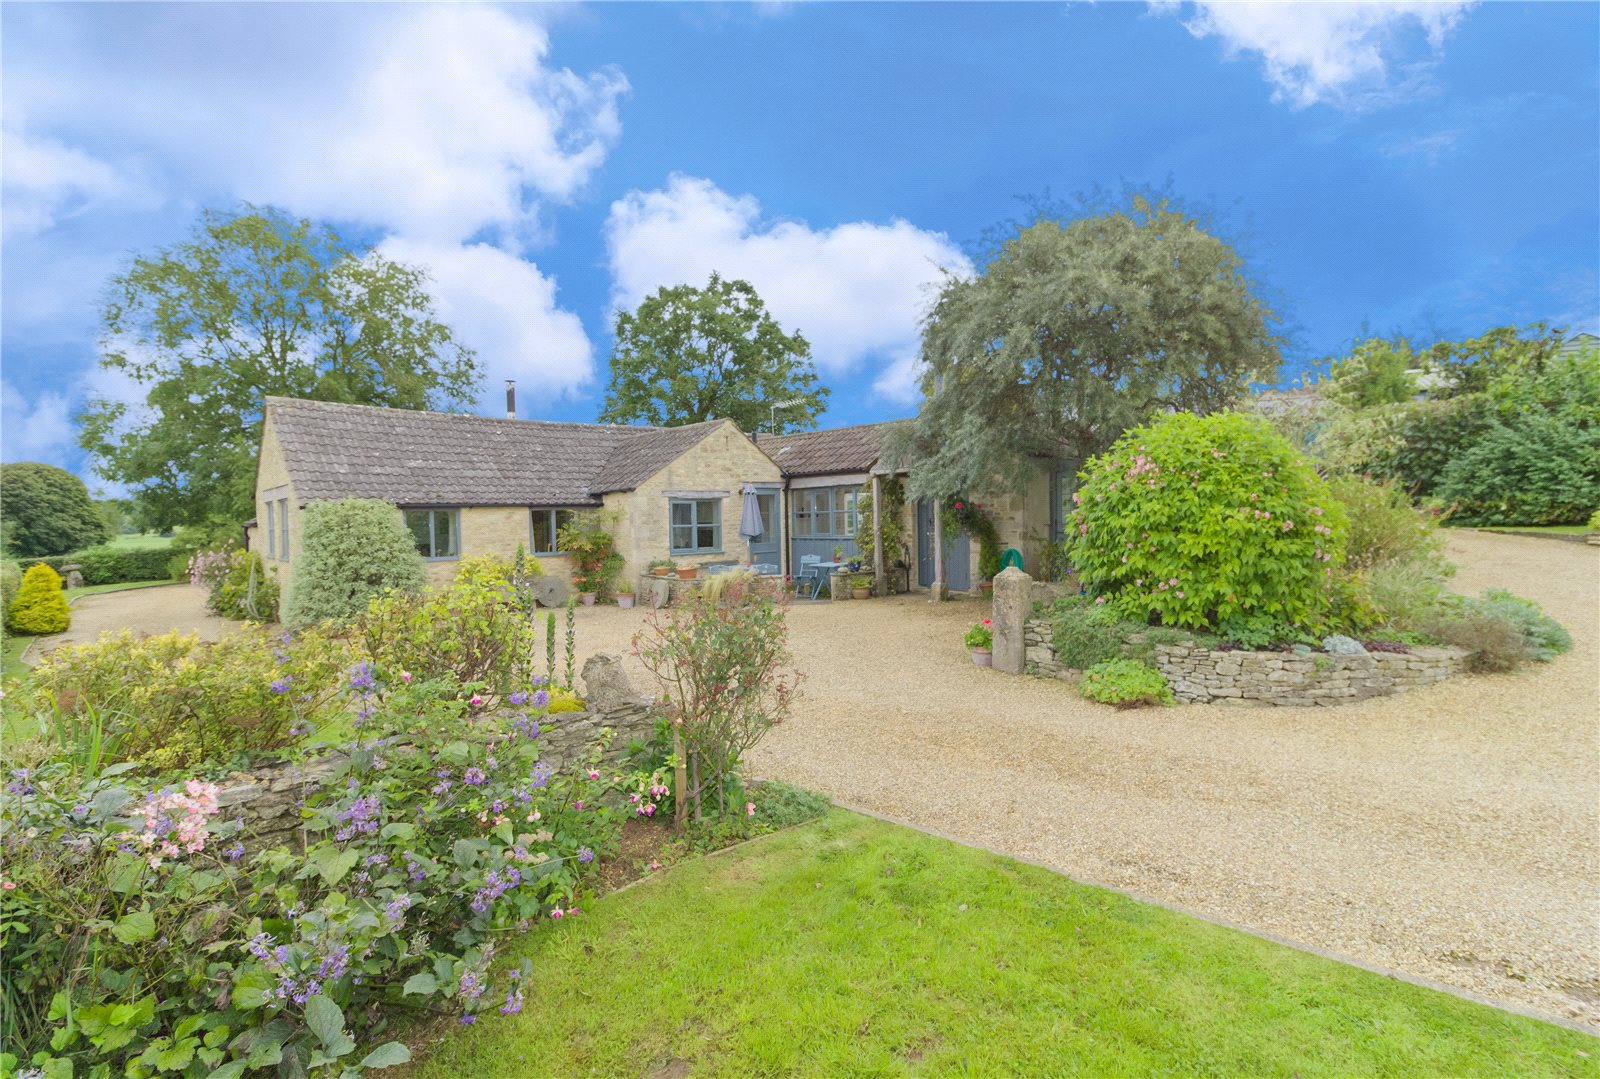 3 Bedrooms Bungalow for sale in Fidges Lane Eastcombe Stroud GL6